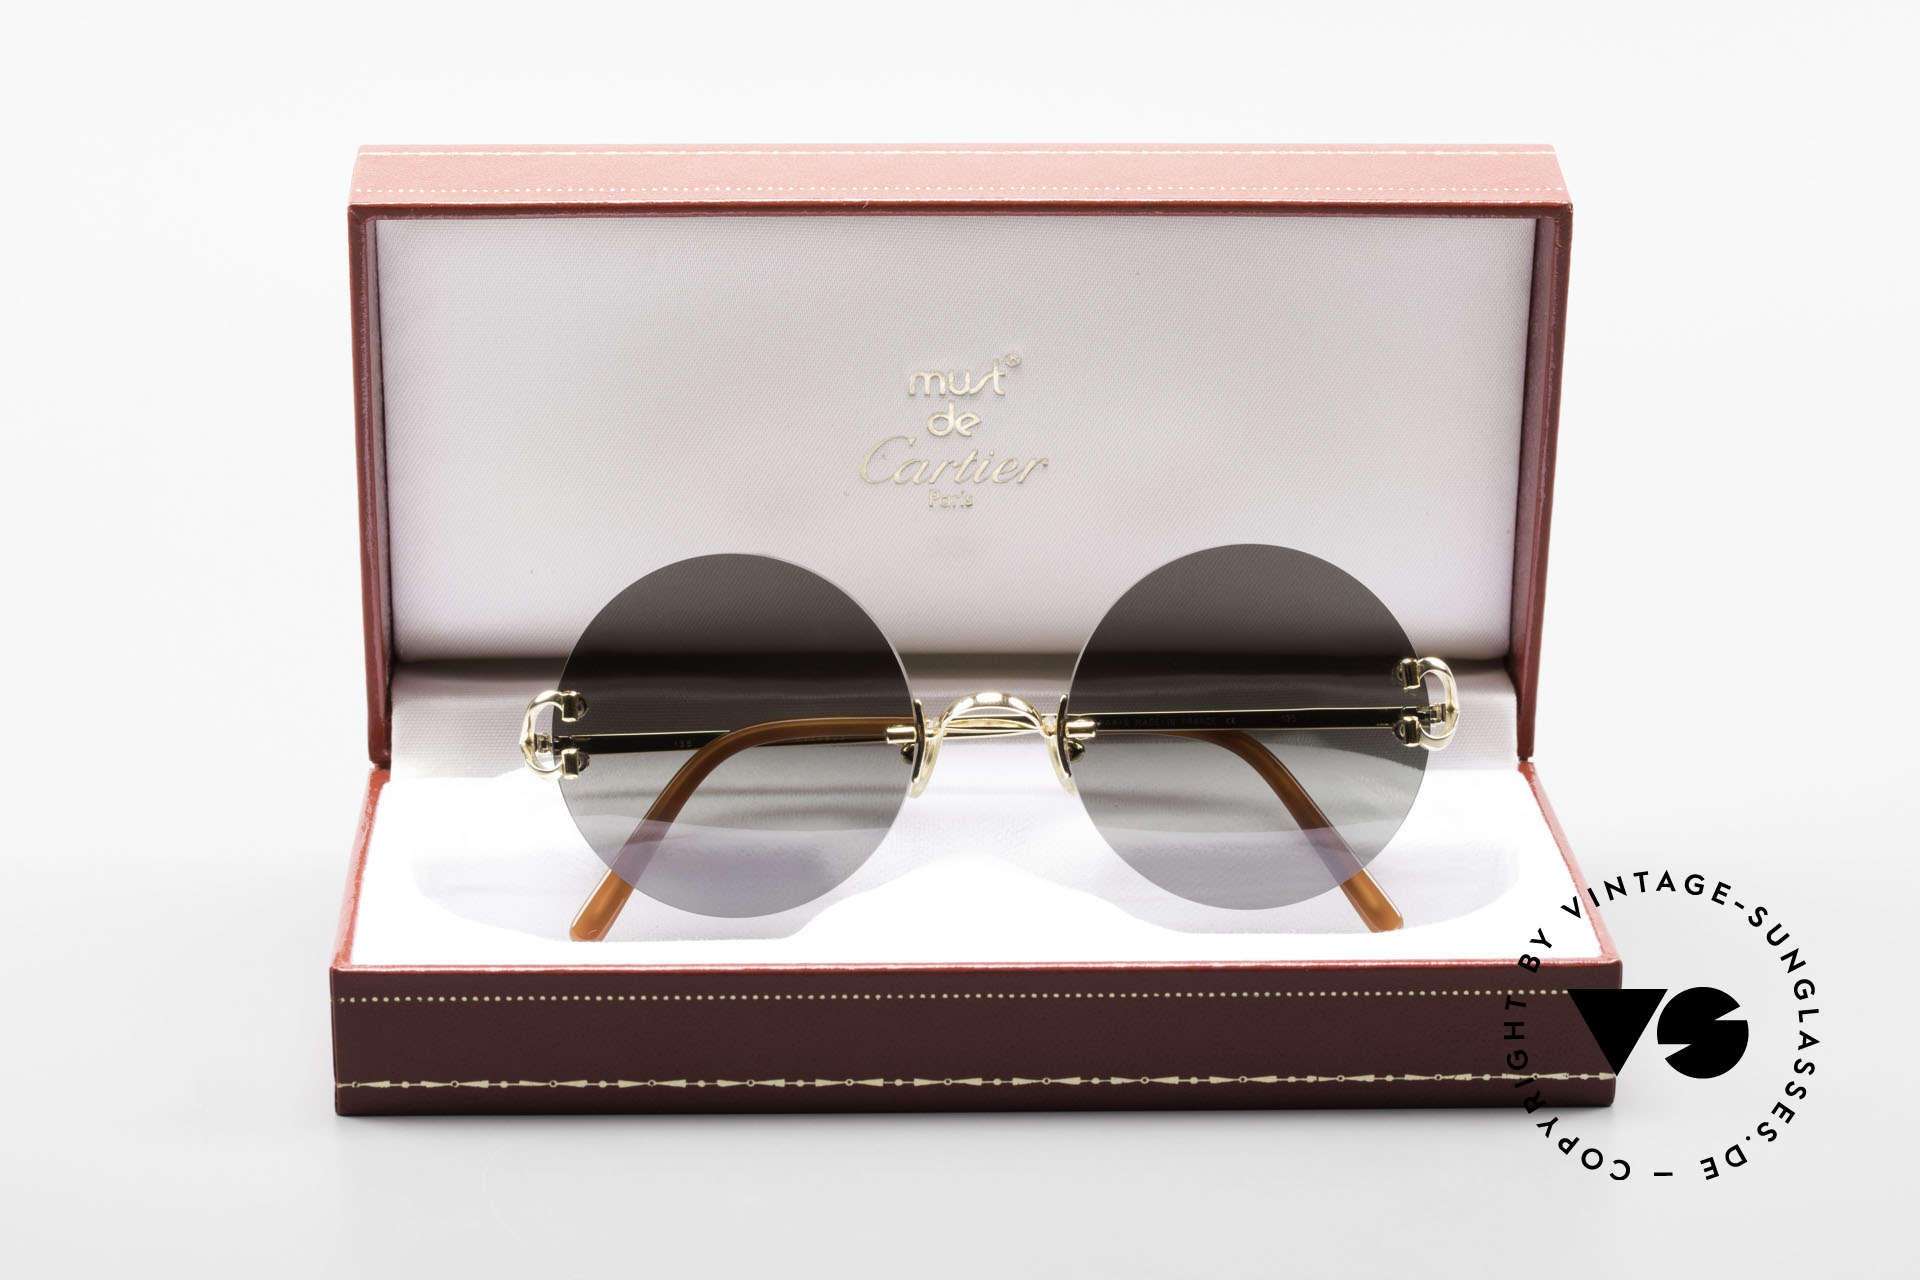 Cartier Madison Round Luxury Sunglasses 90's, Size: medium, Made for Men and Women